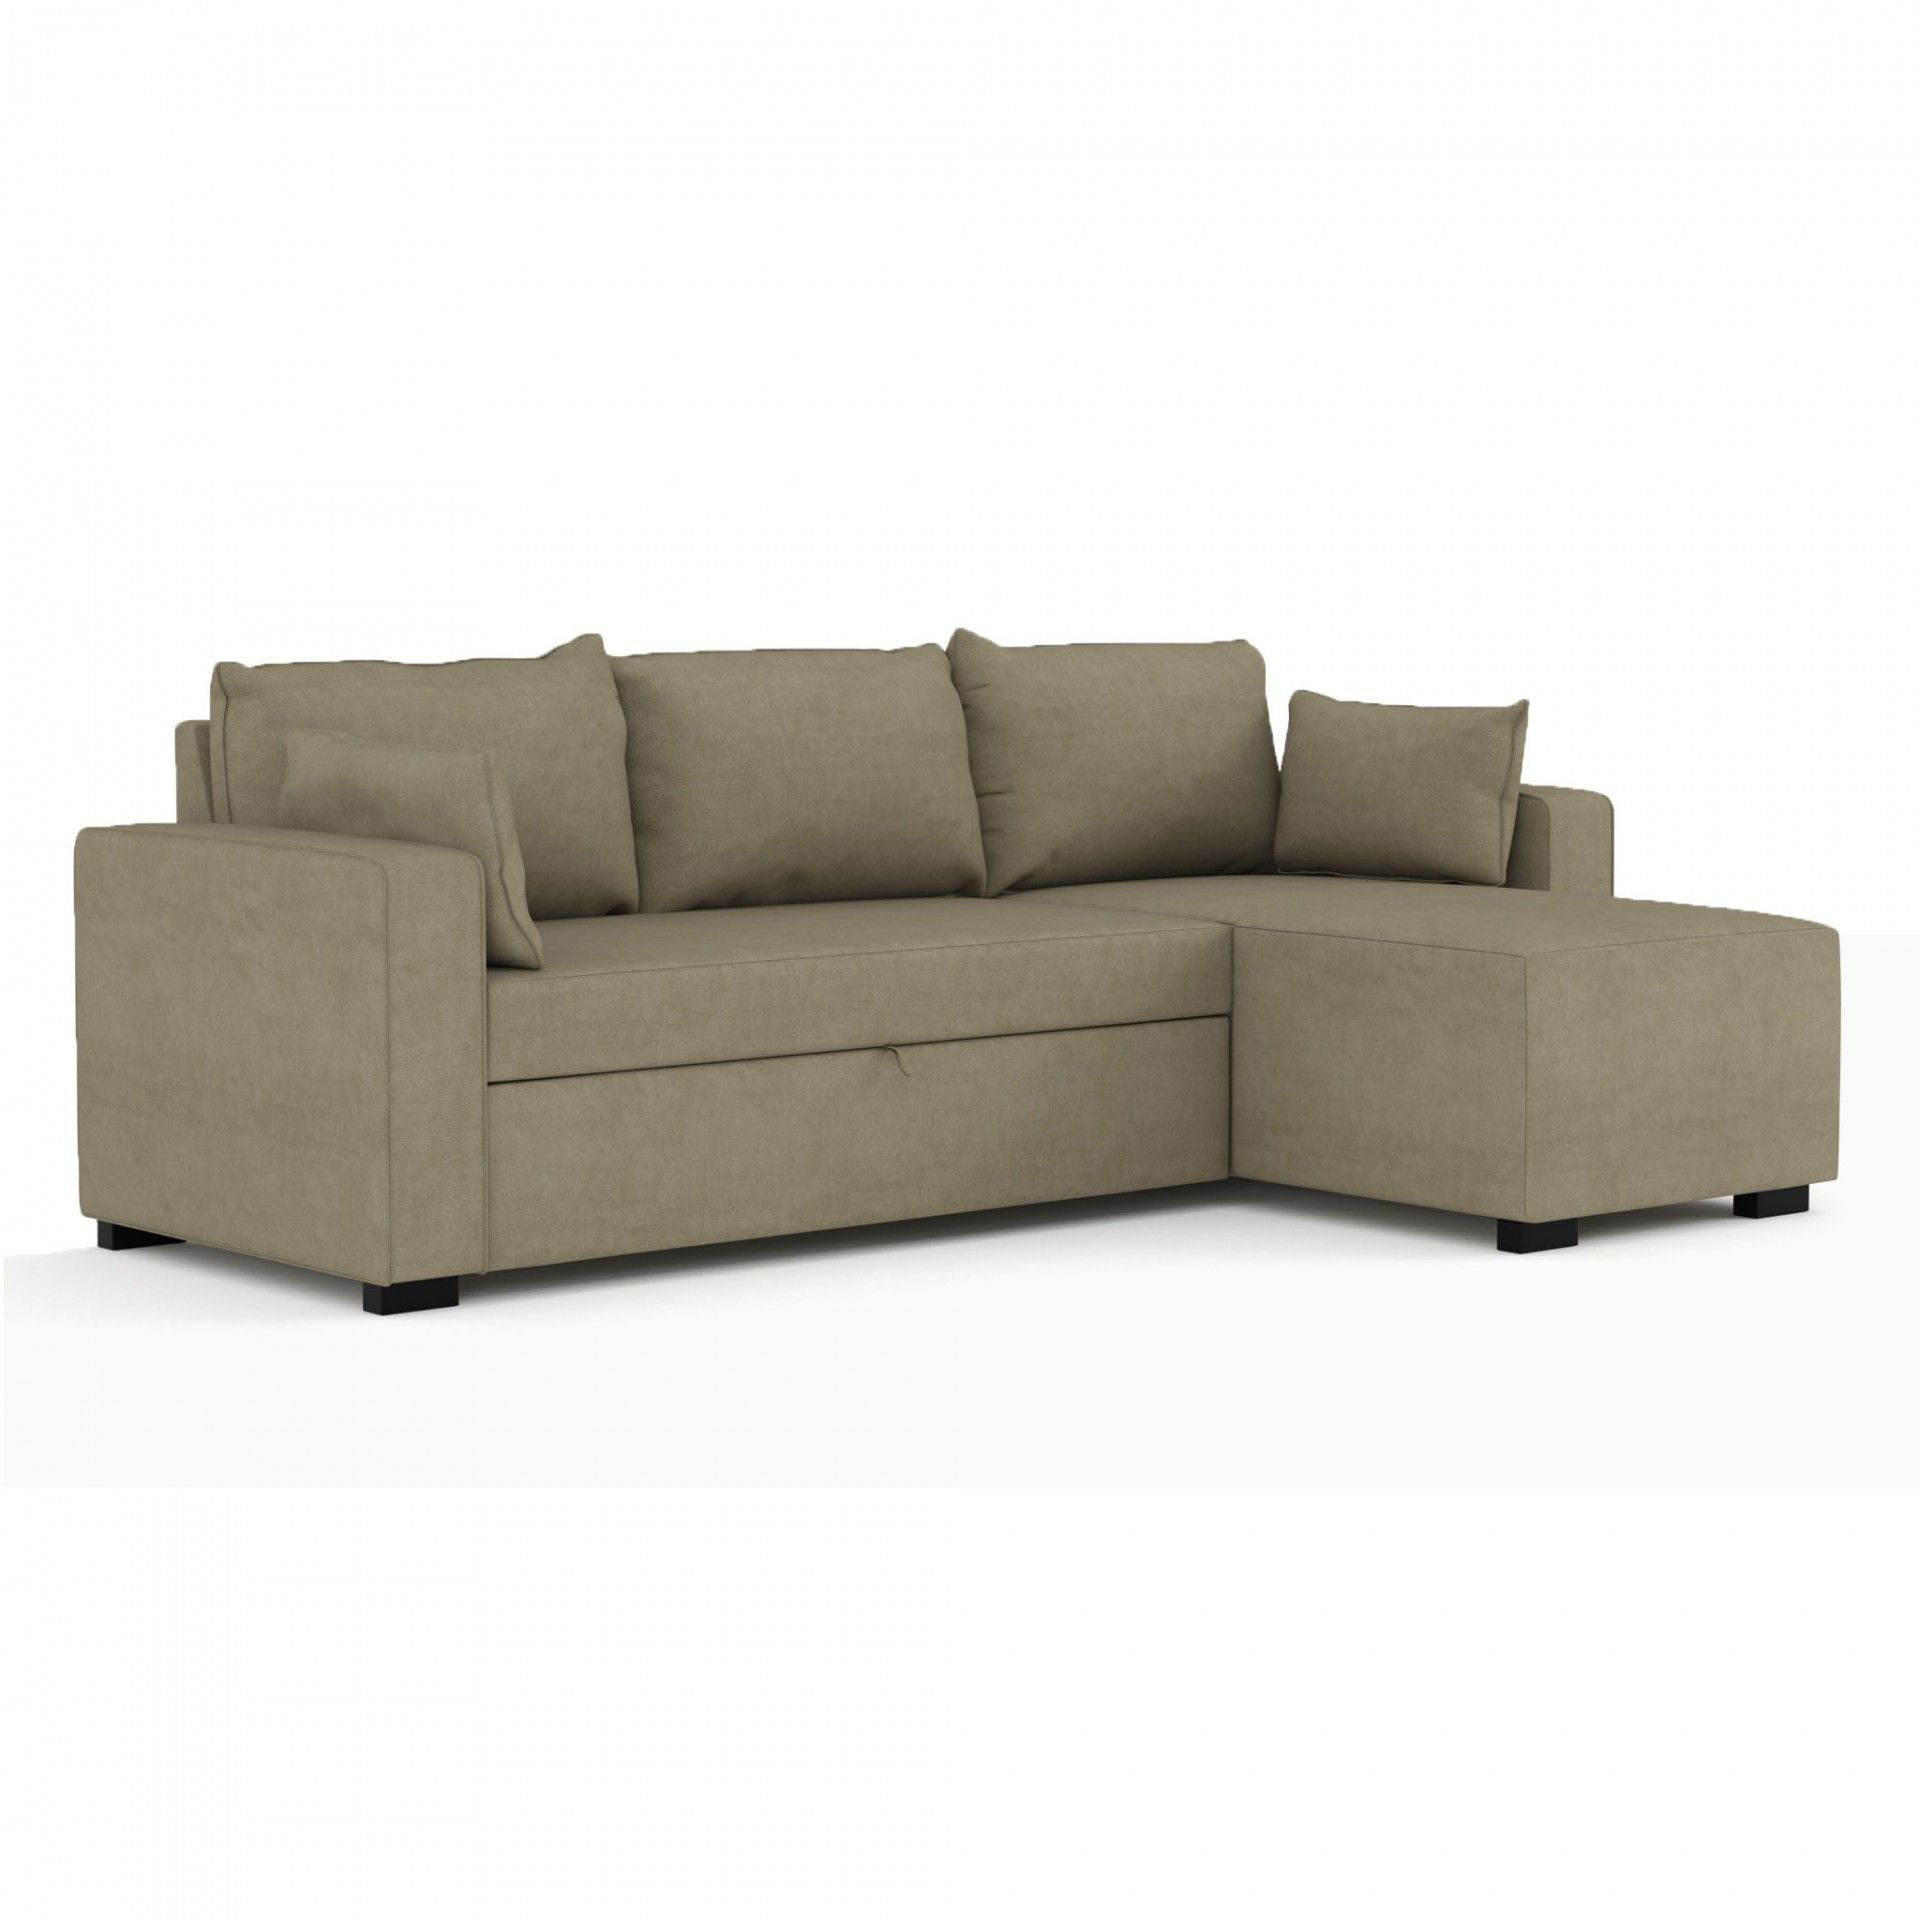 Sofá chaise Longue com Cama Newport | Moviflor